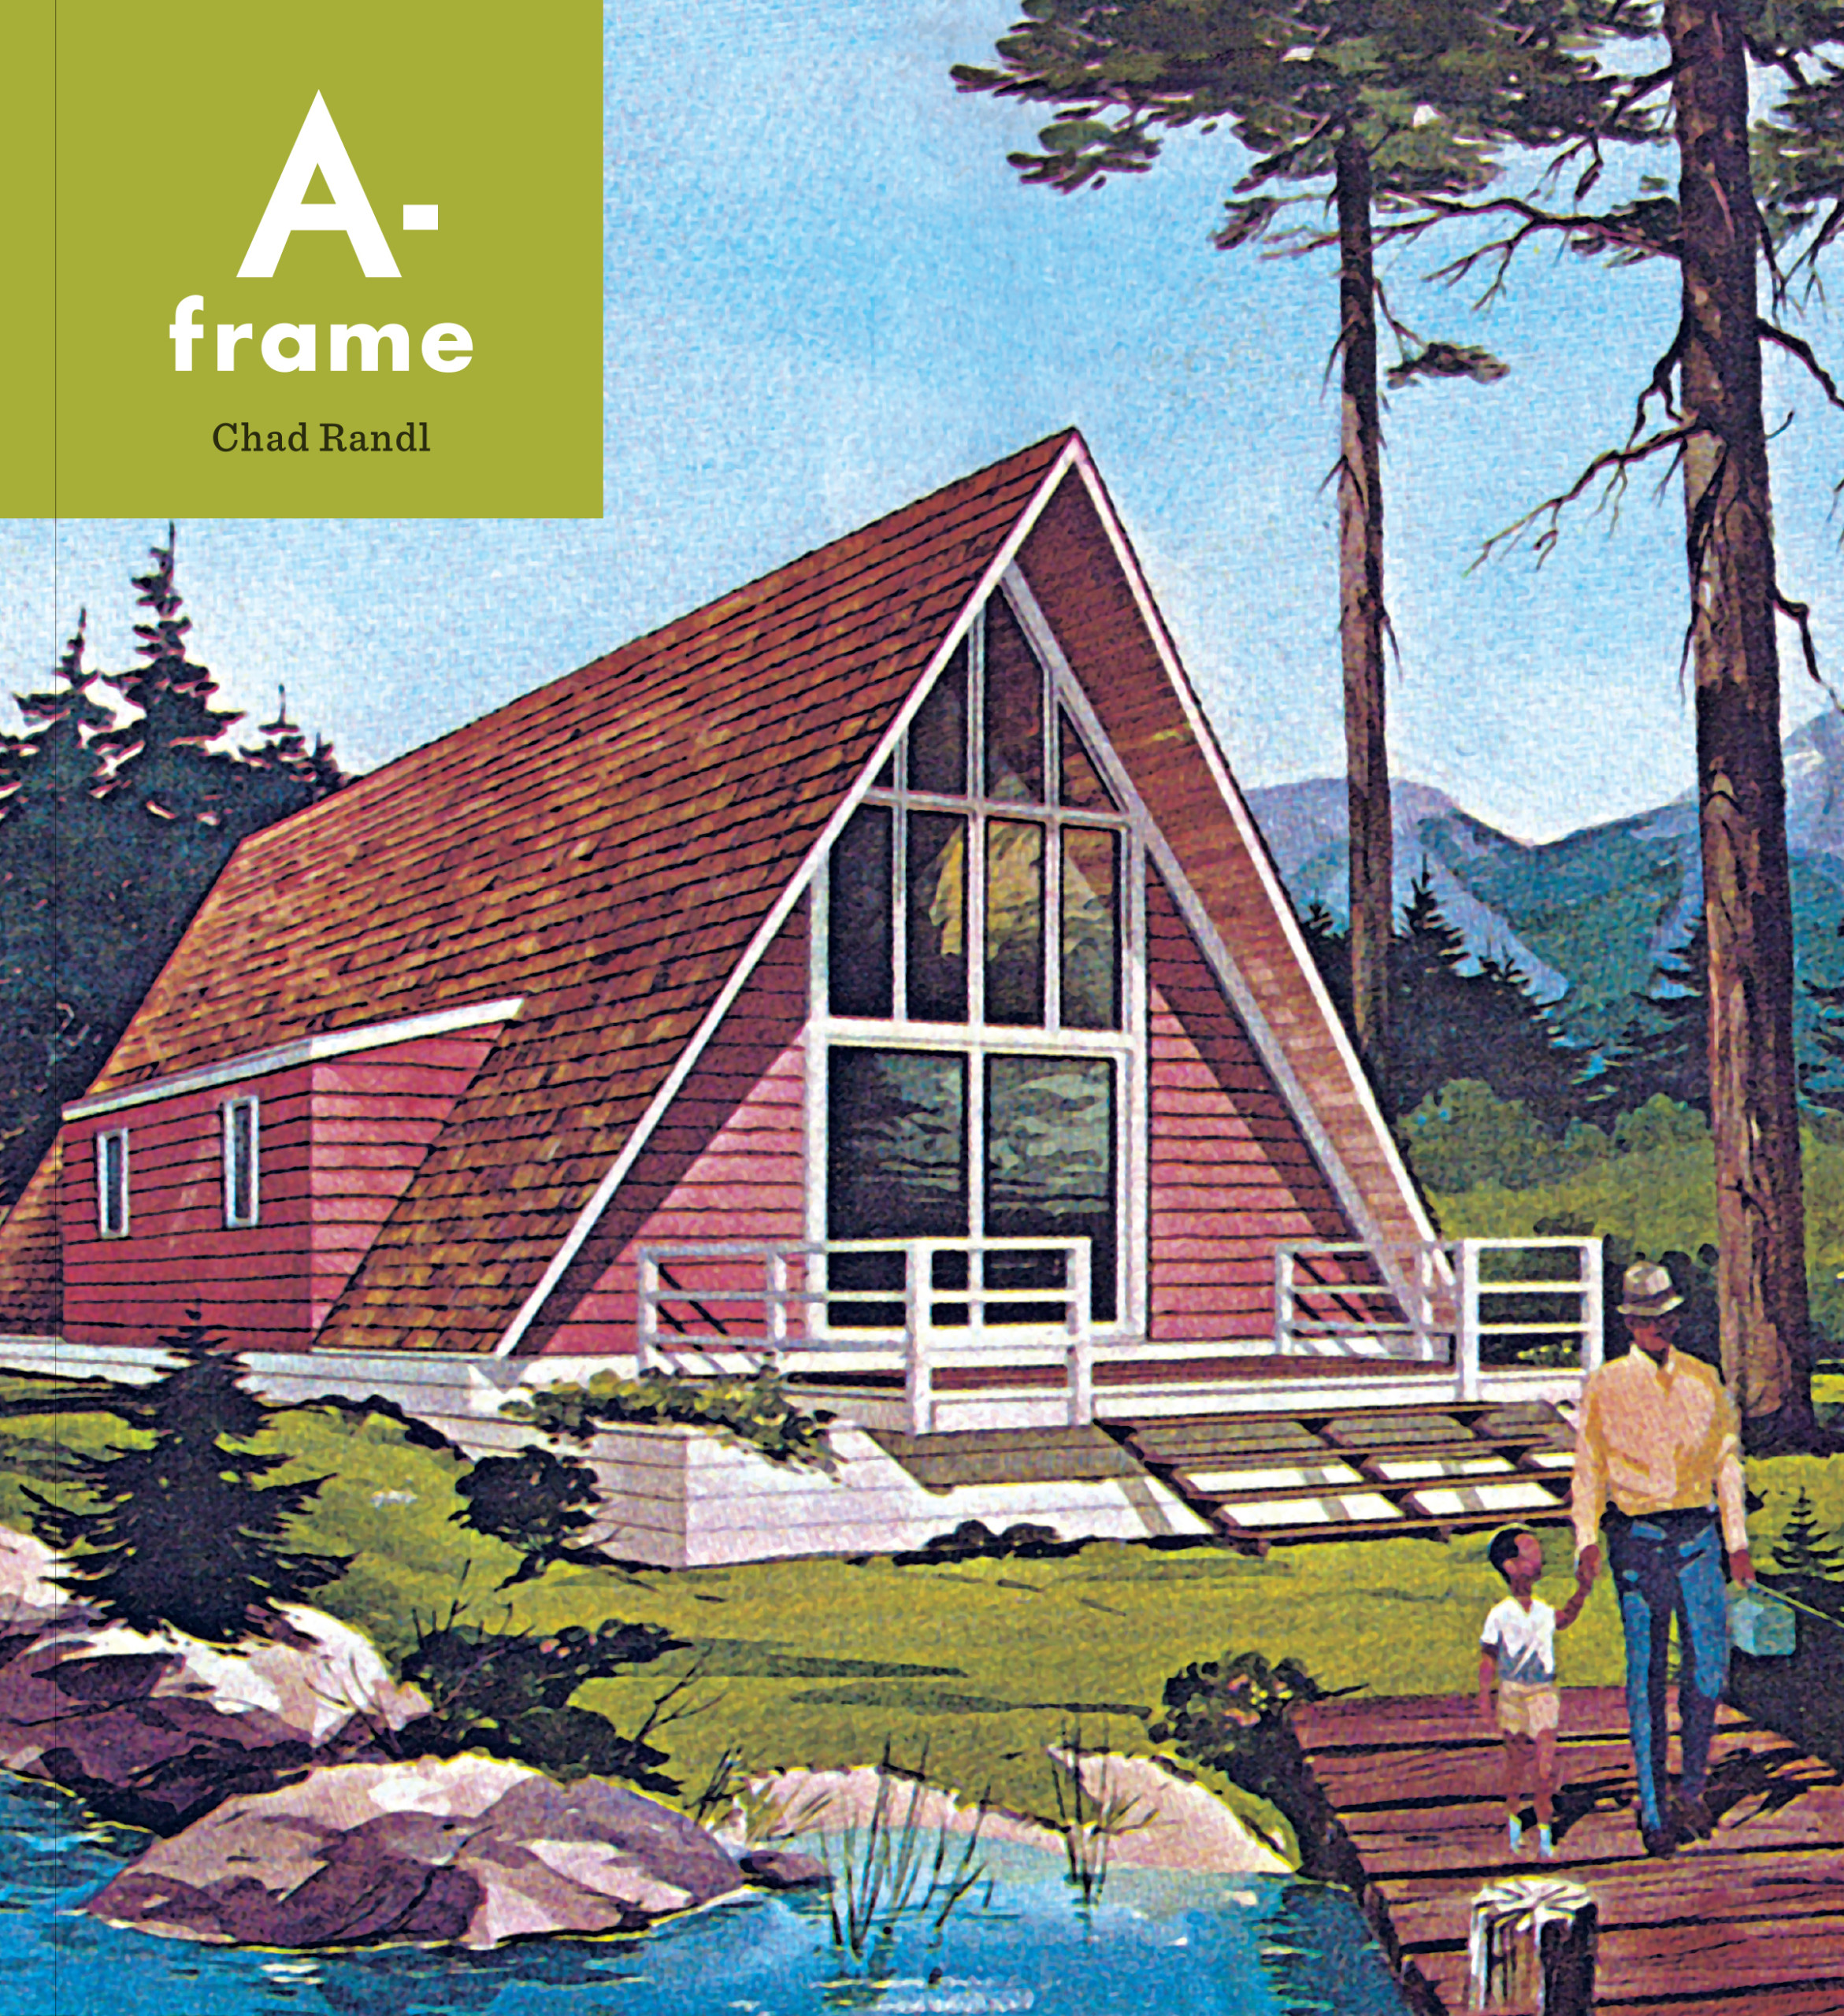 Book cover of A-frame by Chad Randl